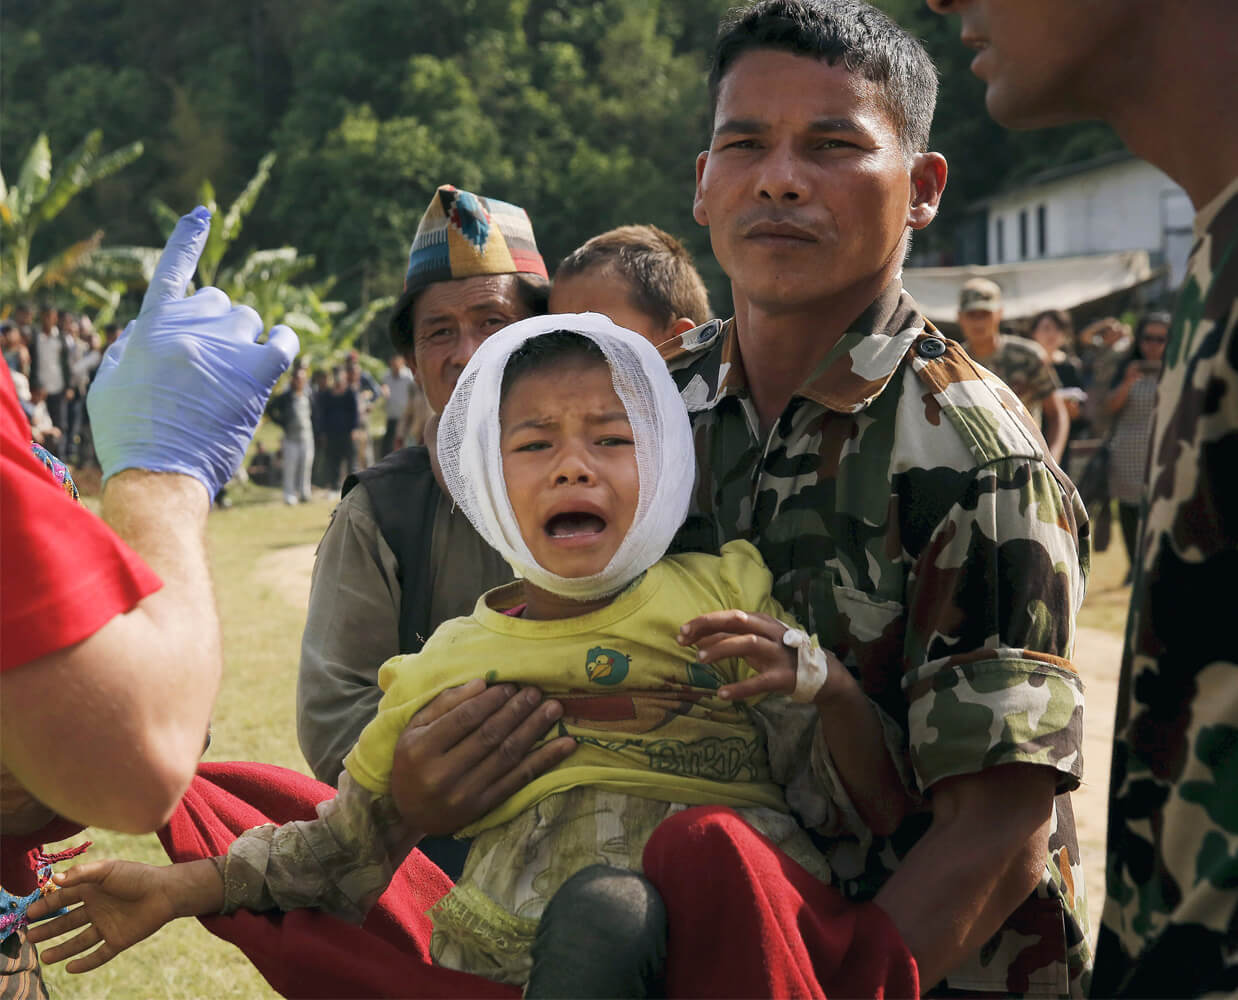 A soldier carries a screaming boy to the hospital tent.